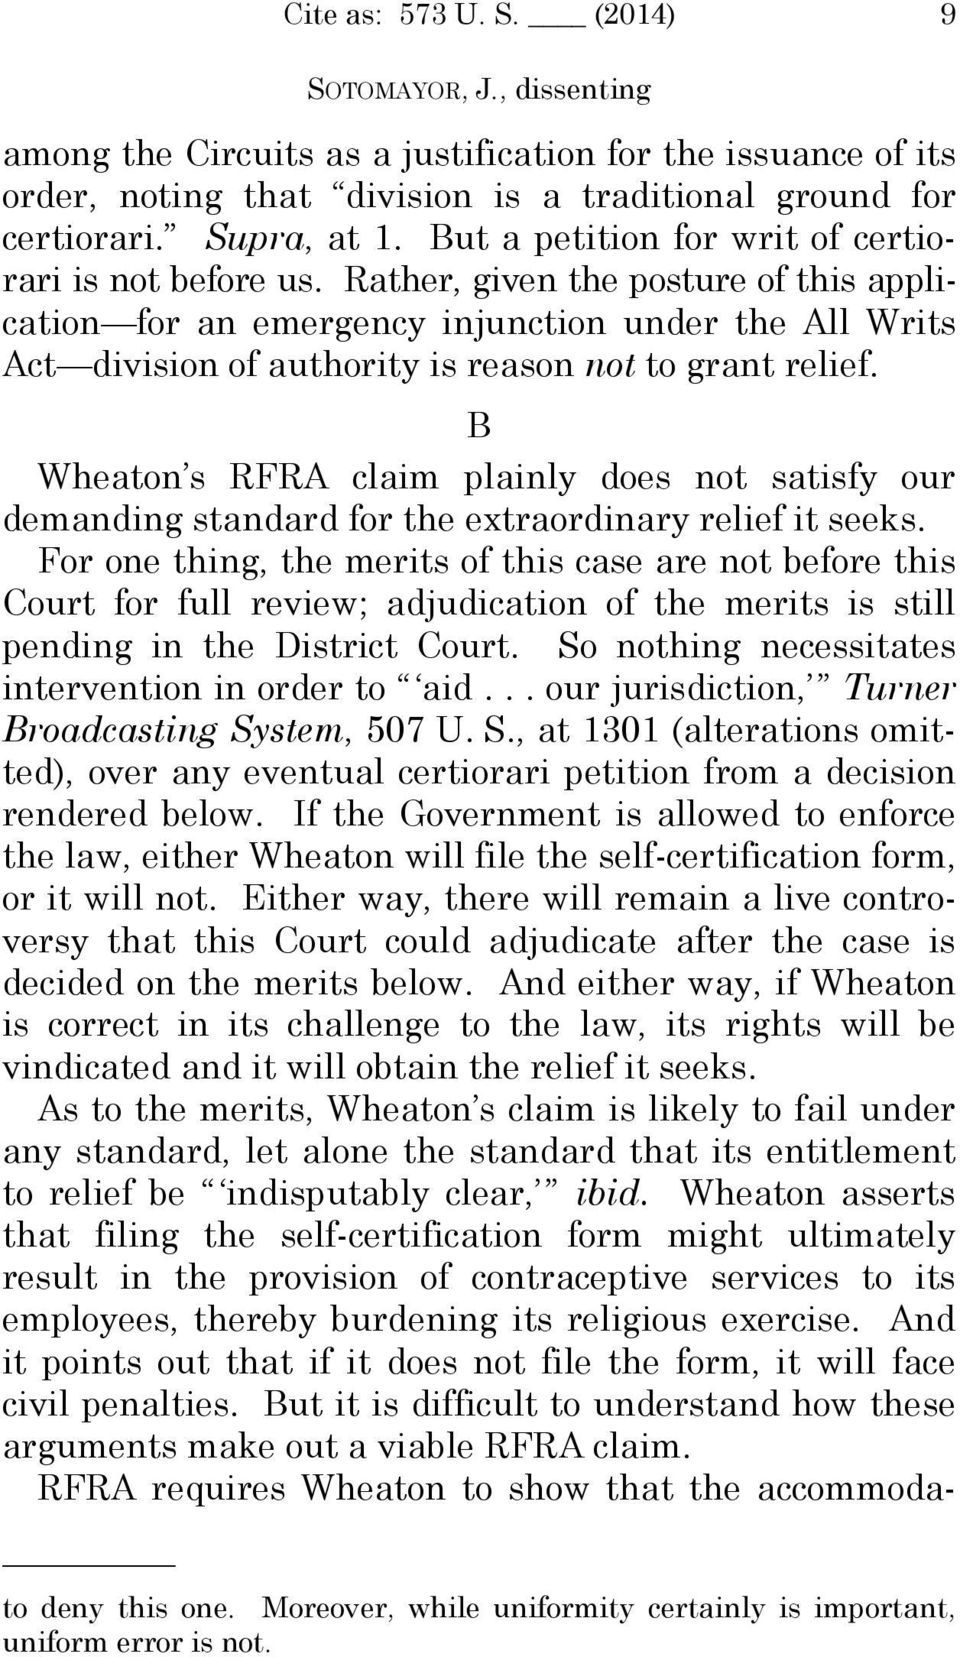 Rather, given the posture of this application for an emergency injunction under the All Writs Act division of authority is reason not to grant relief.